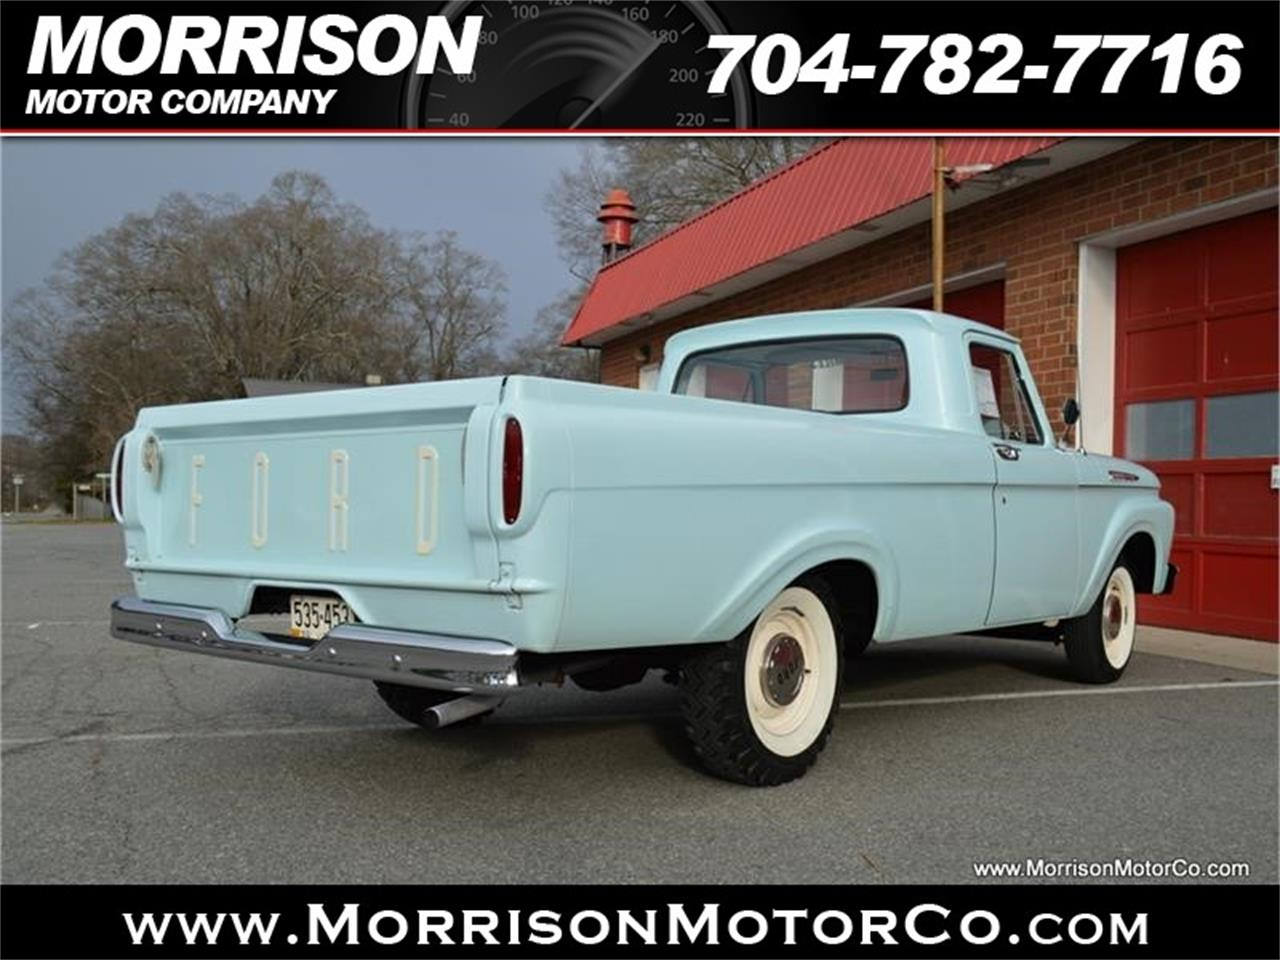 Large Picture of 1961 Ford F100 located in North Carolina - $28,900.00 - N2N5